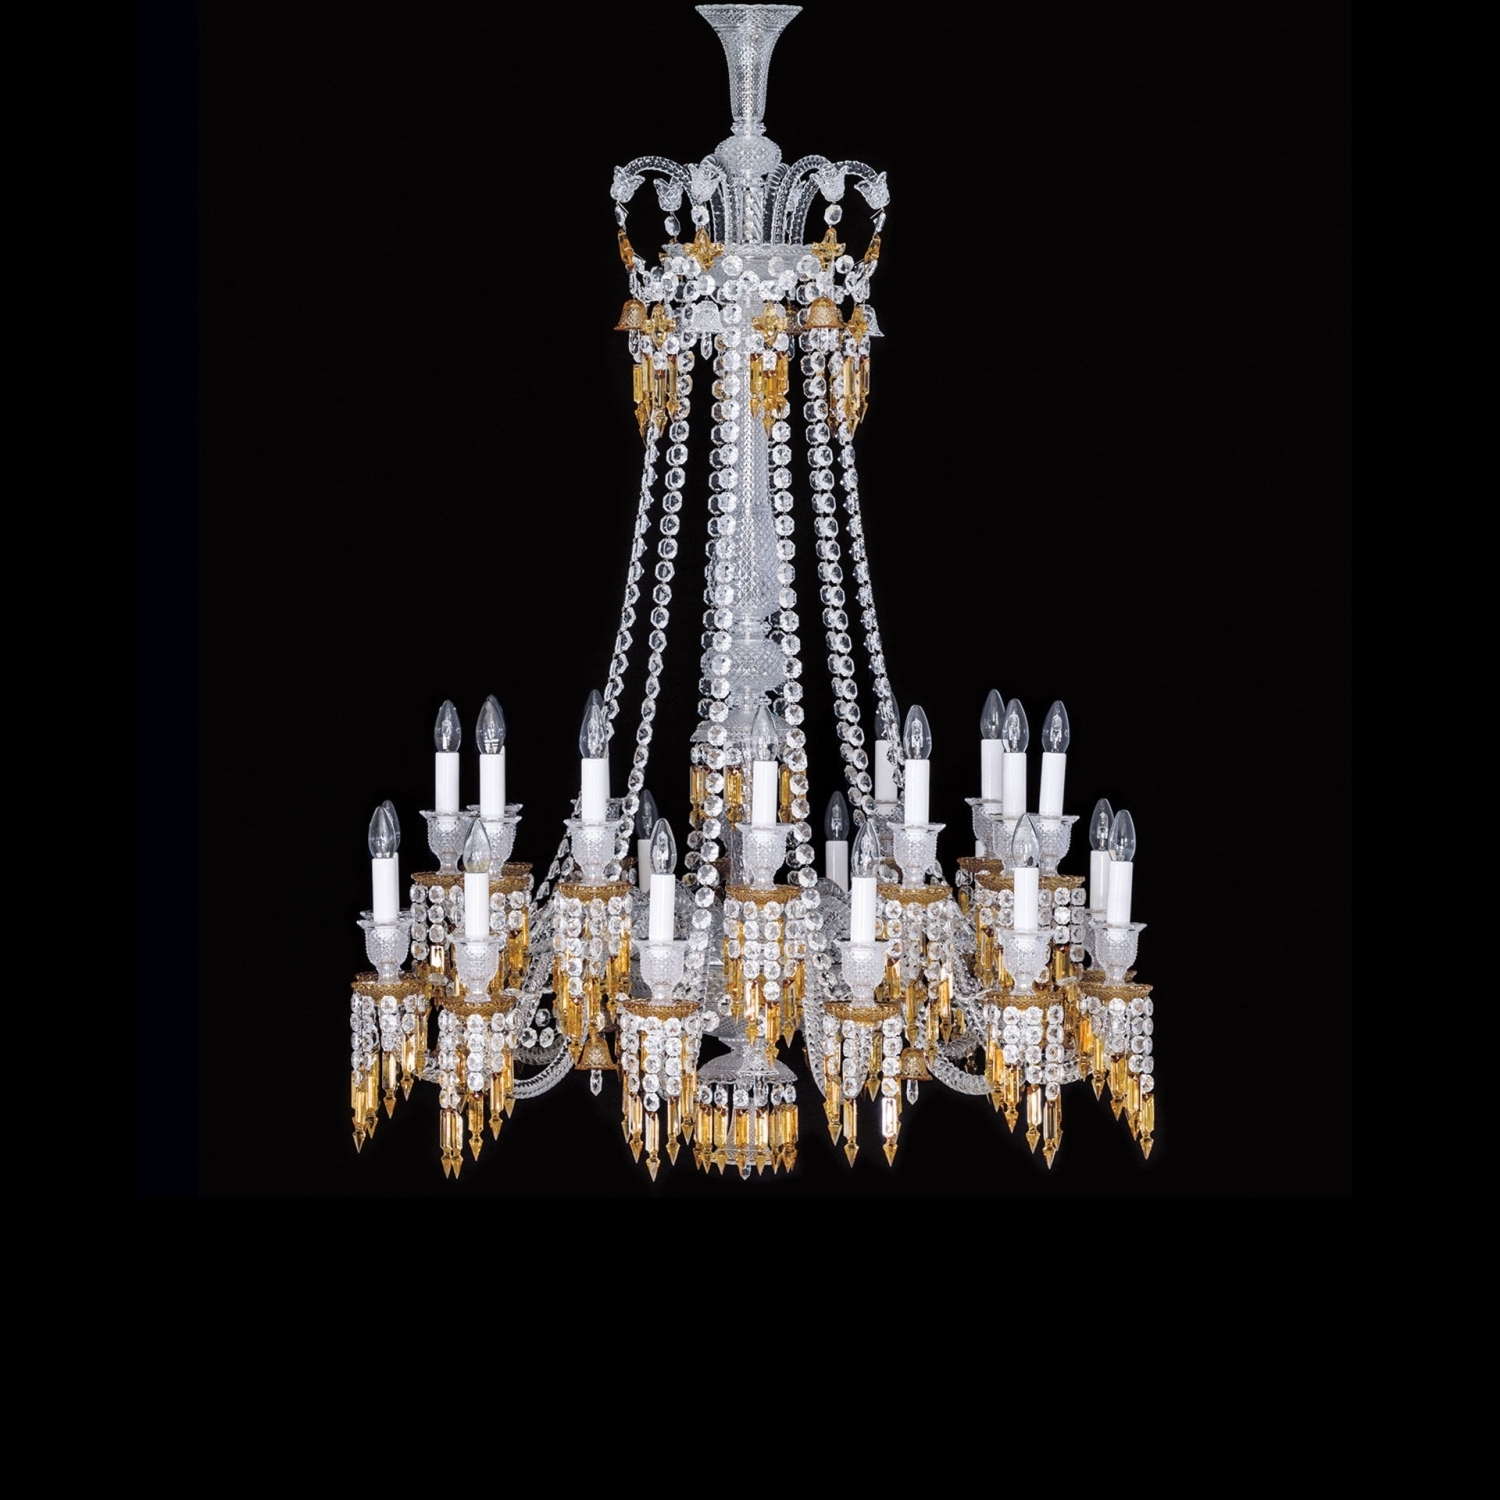 Chandelier 24L Baccarat Zenith Charleston 2809432 Throughout 2018 Long Chandelier Lighting (View 1 of 15)